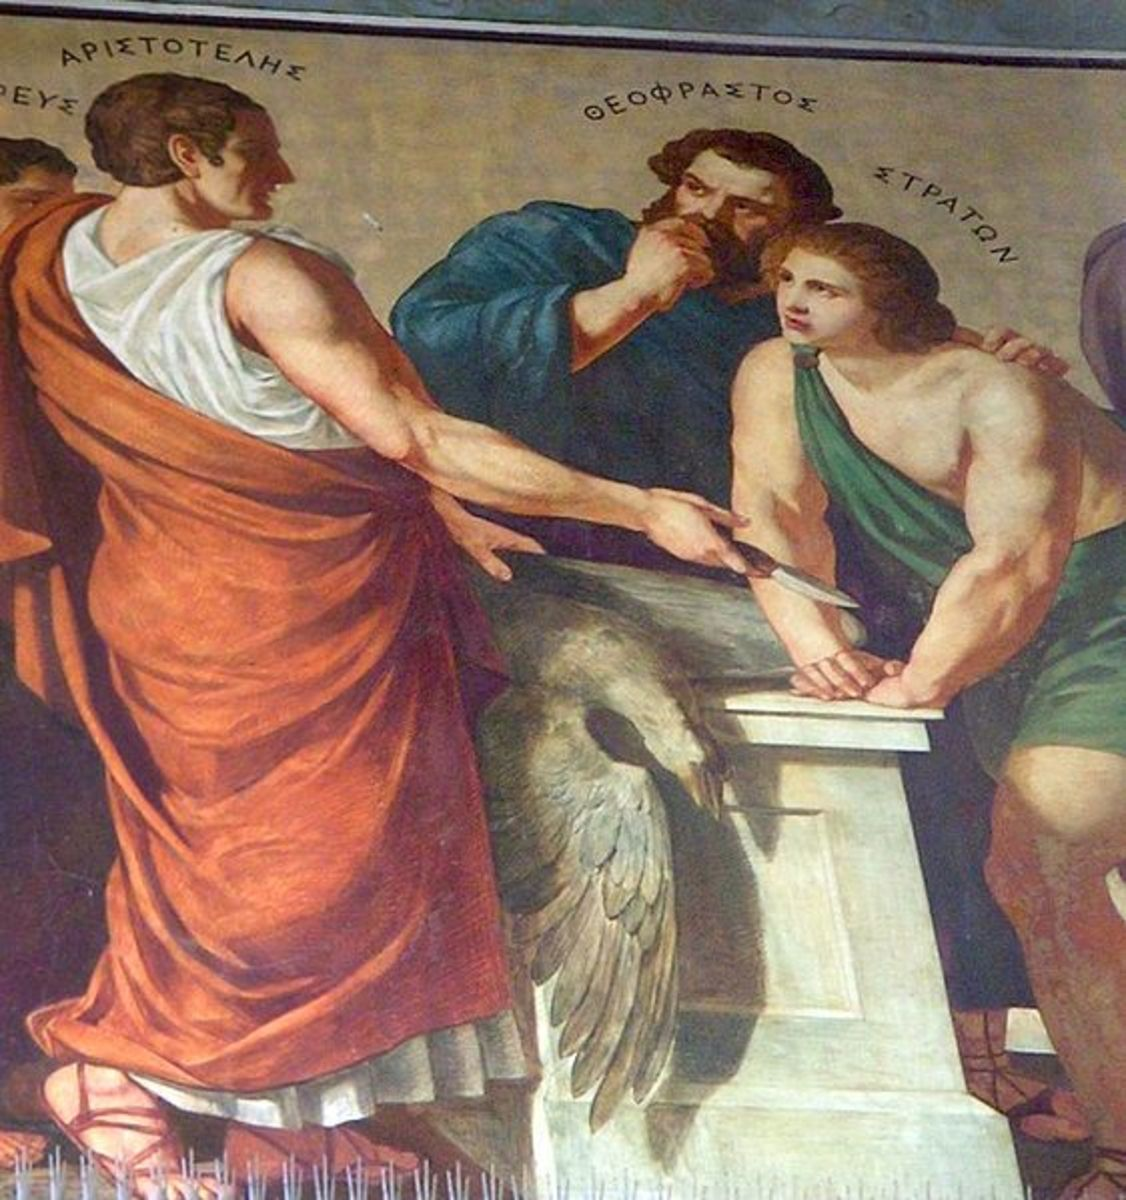 Theophrastus and Aristotle